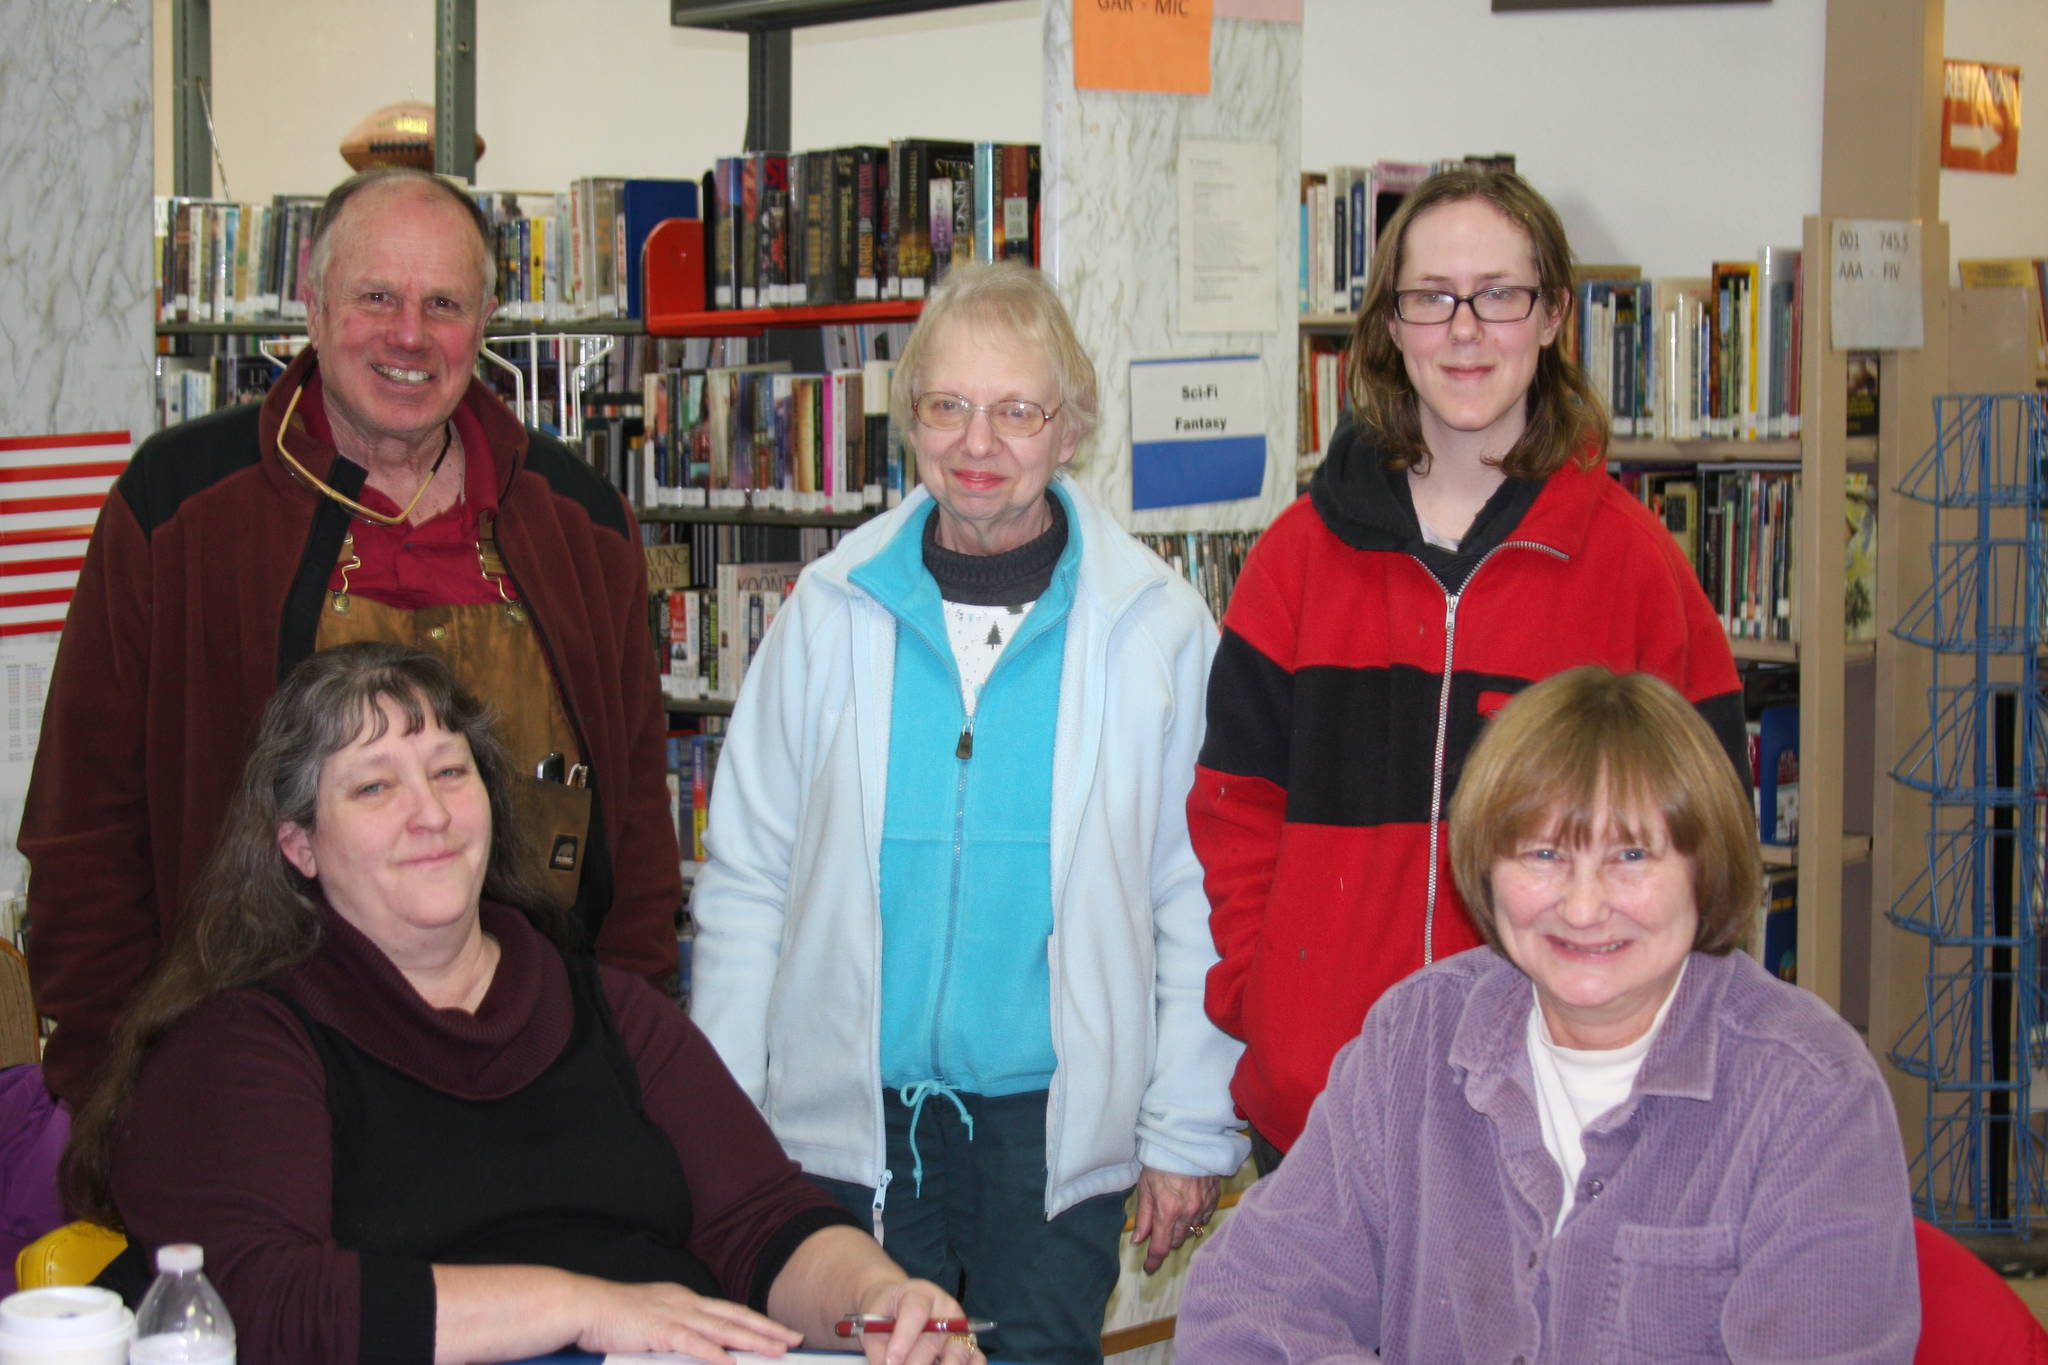 Anchor Point Library Board members are, from left to right, Deanna Thomas, Bob Craig, Lora Craig, Adriane Appelhanz, Mary Perry. Anchor Point Public Library board members met on Jan. 6, 2018 to begin planning this year's Cabin Fever Variety Show in Anchor Point, Alaska. (Photo by Delcenia Cosman)